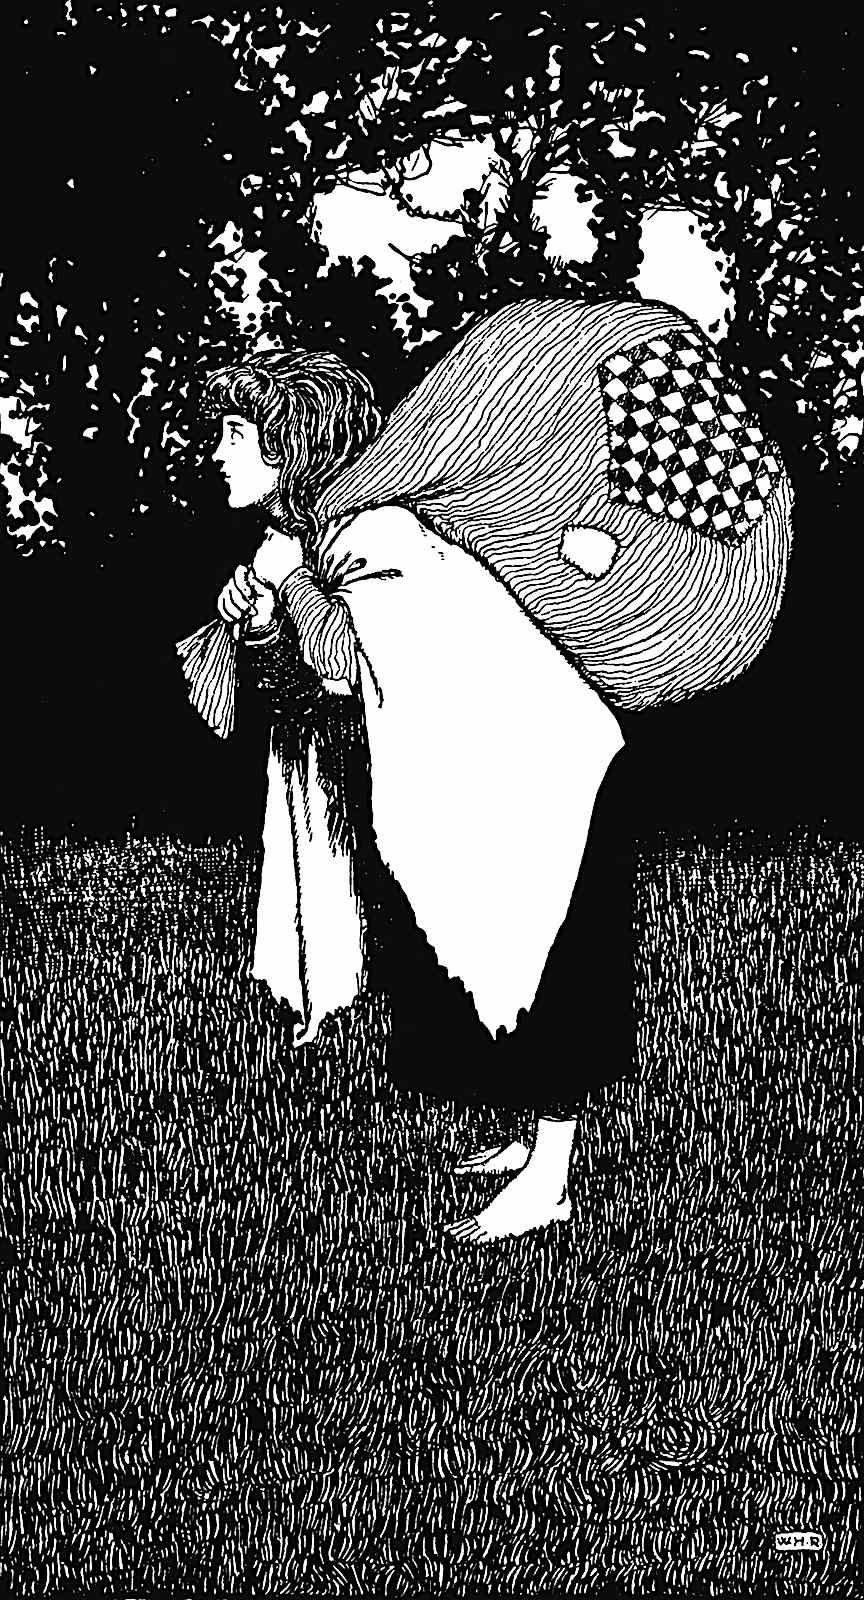 a W. Heath Robinson illustration of a woman in full profile carrying a lage sack